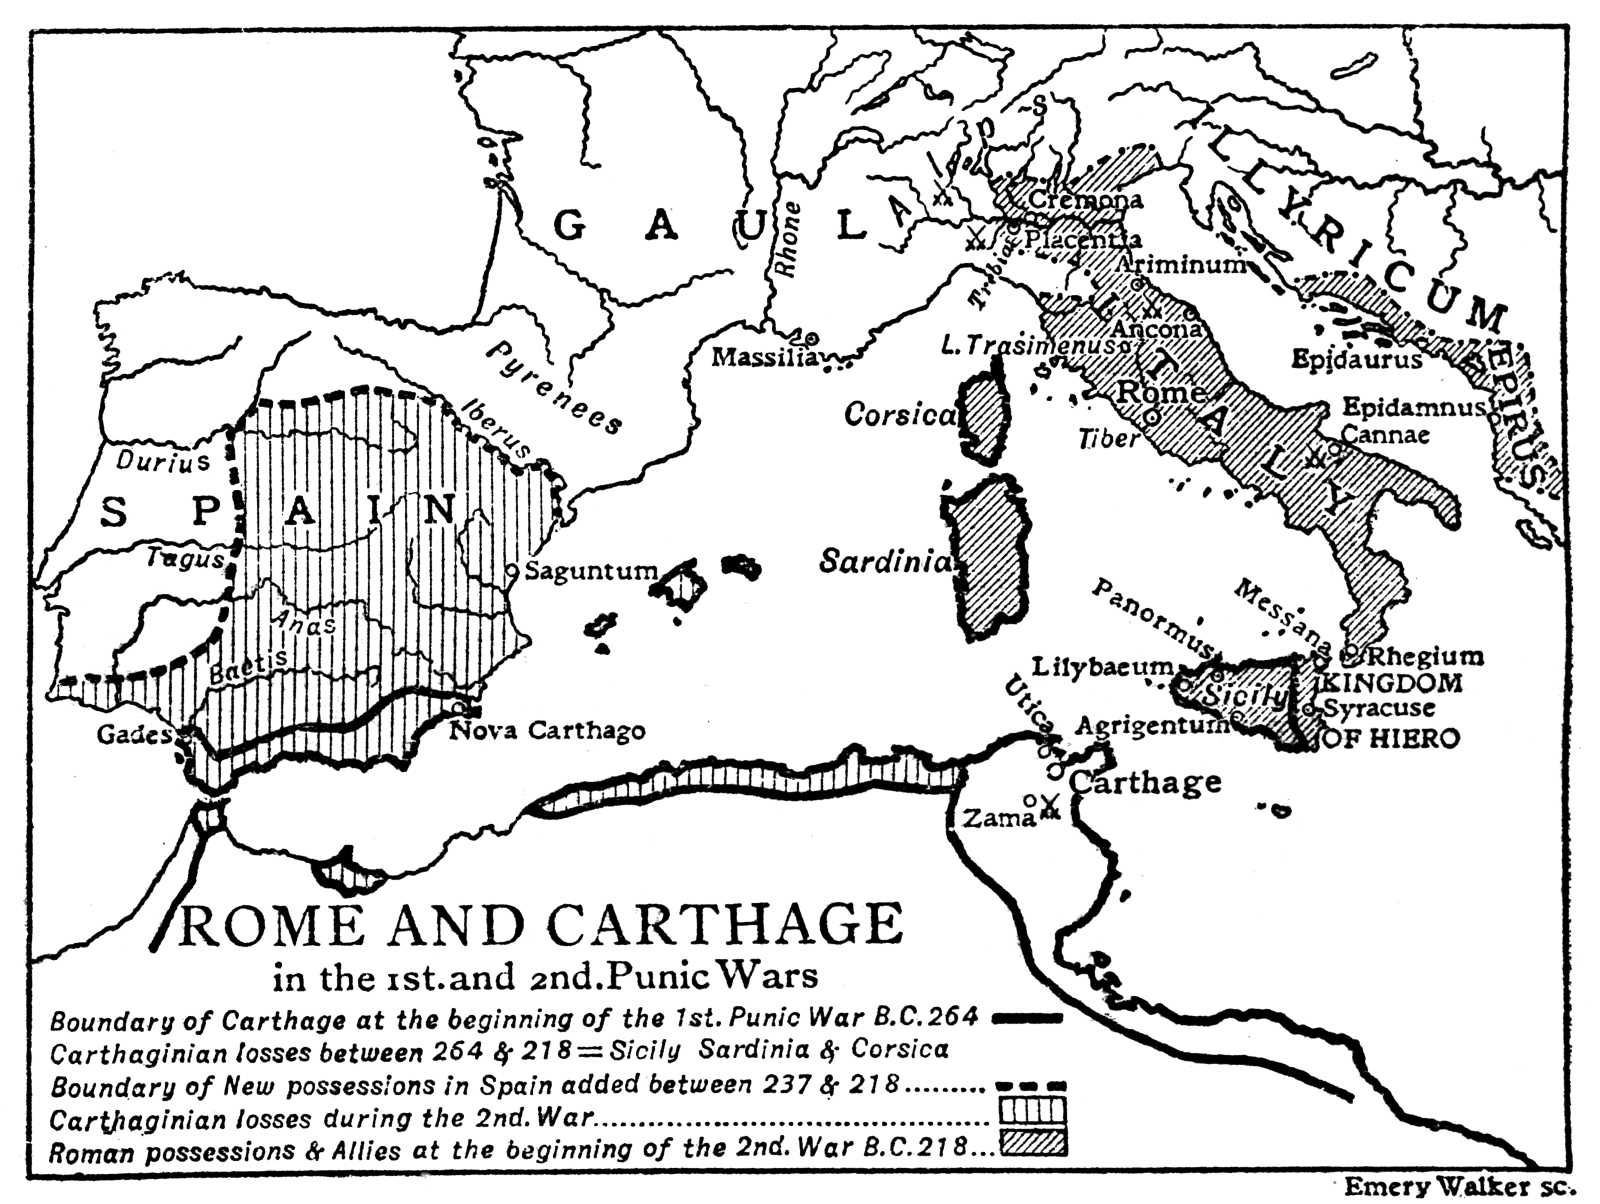 Week5 Map Of Rome And Carthage In The 1st And 2nd Punic Wars